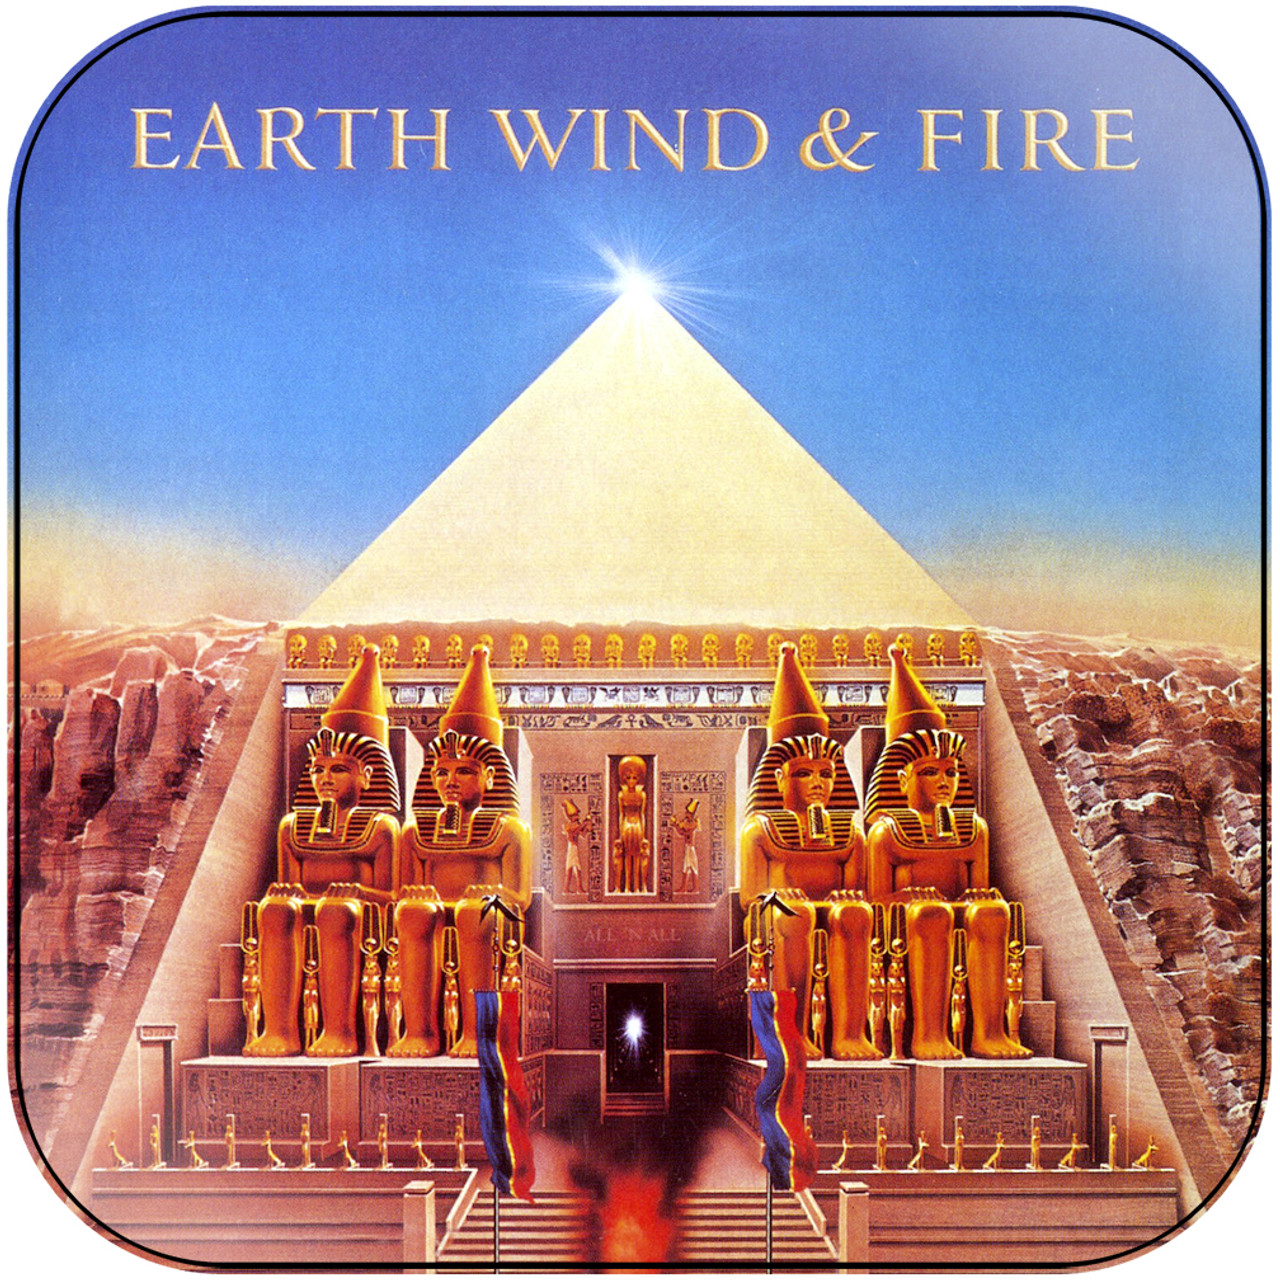 Earth Wind and Fire - All N All Album Cover Sticker